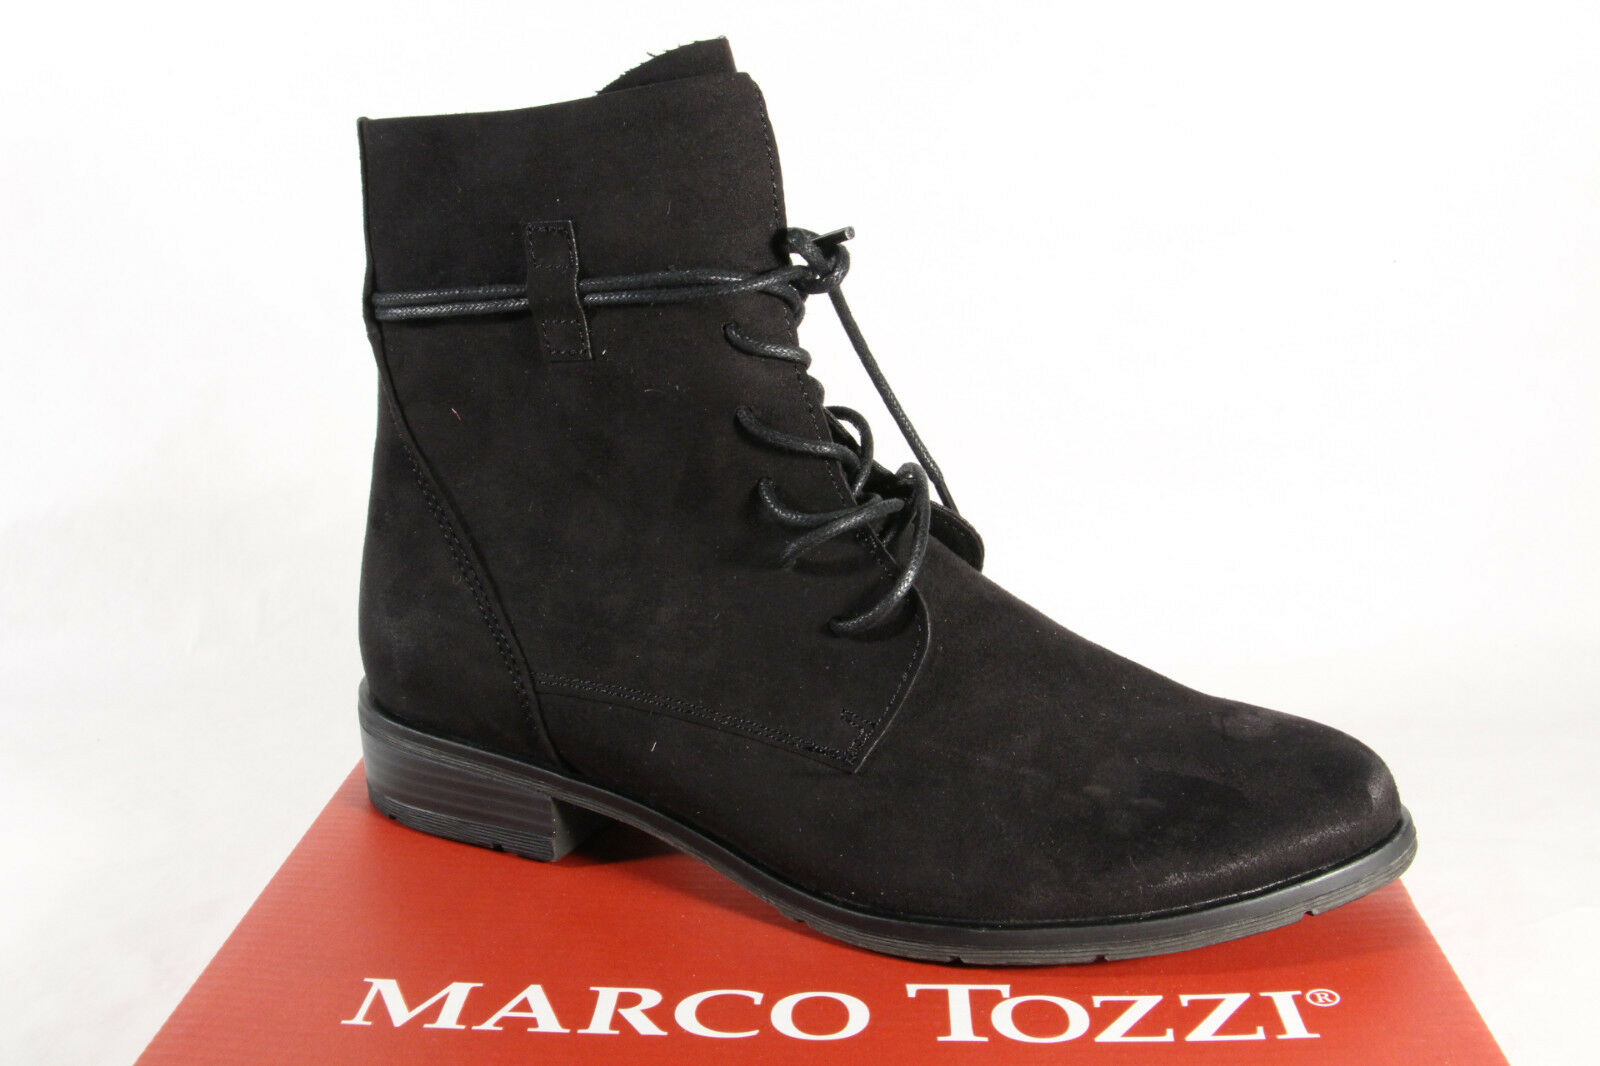 Marco Tozzi Women's Boots Ankle Boots Lace up Boots, Boots Black 25112 New